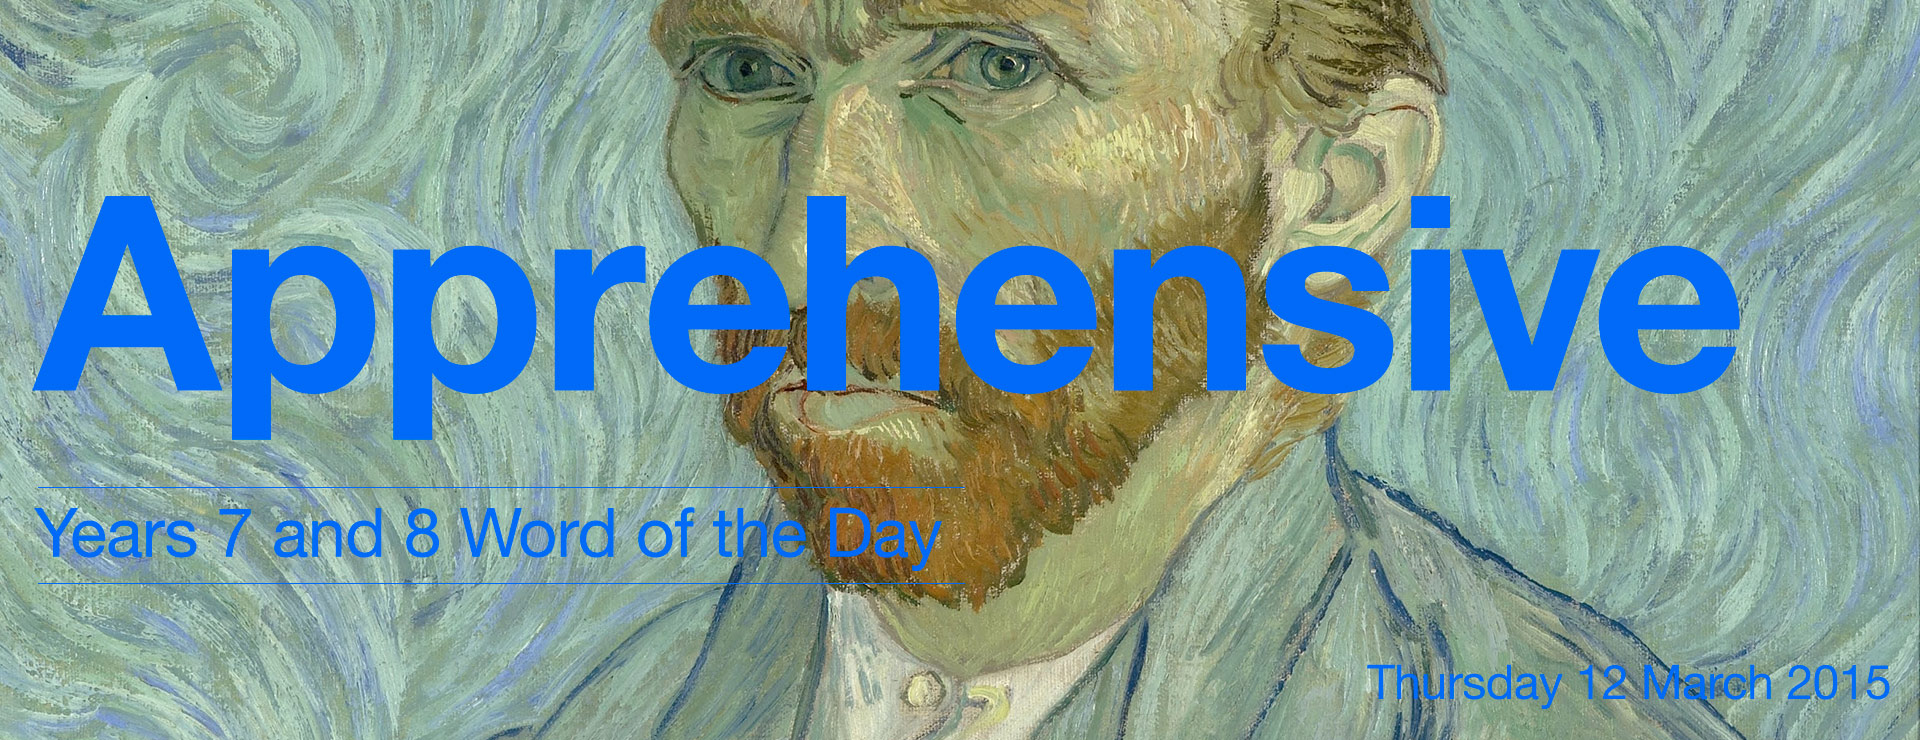 Word-of-the-Day-97.jpg